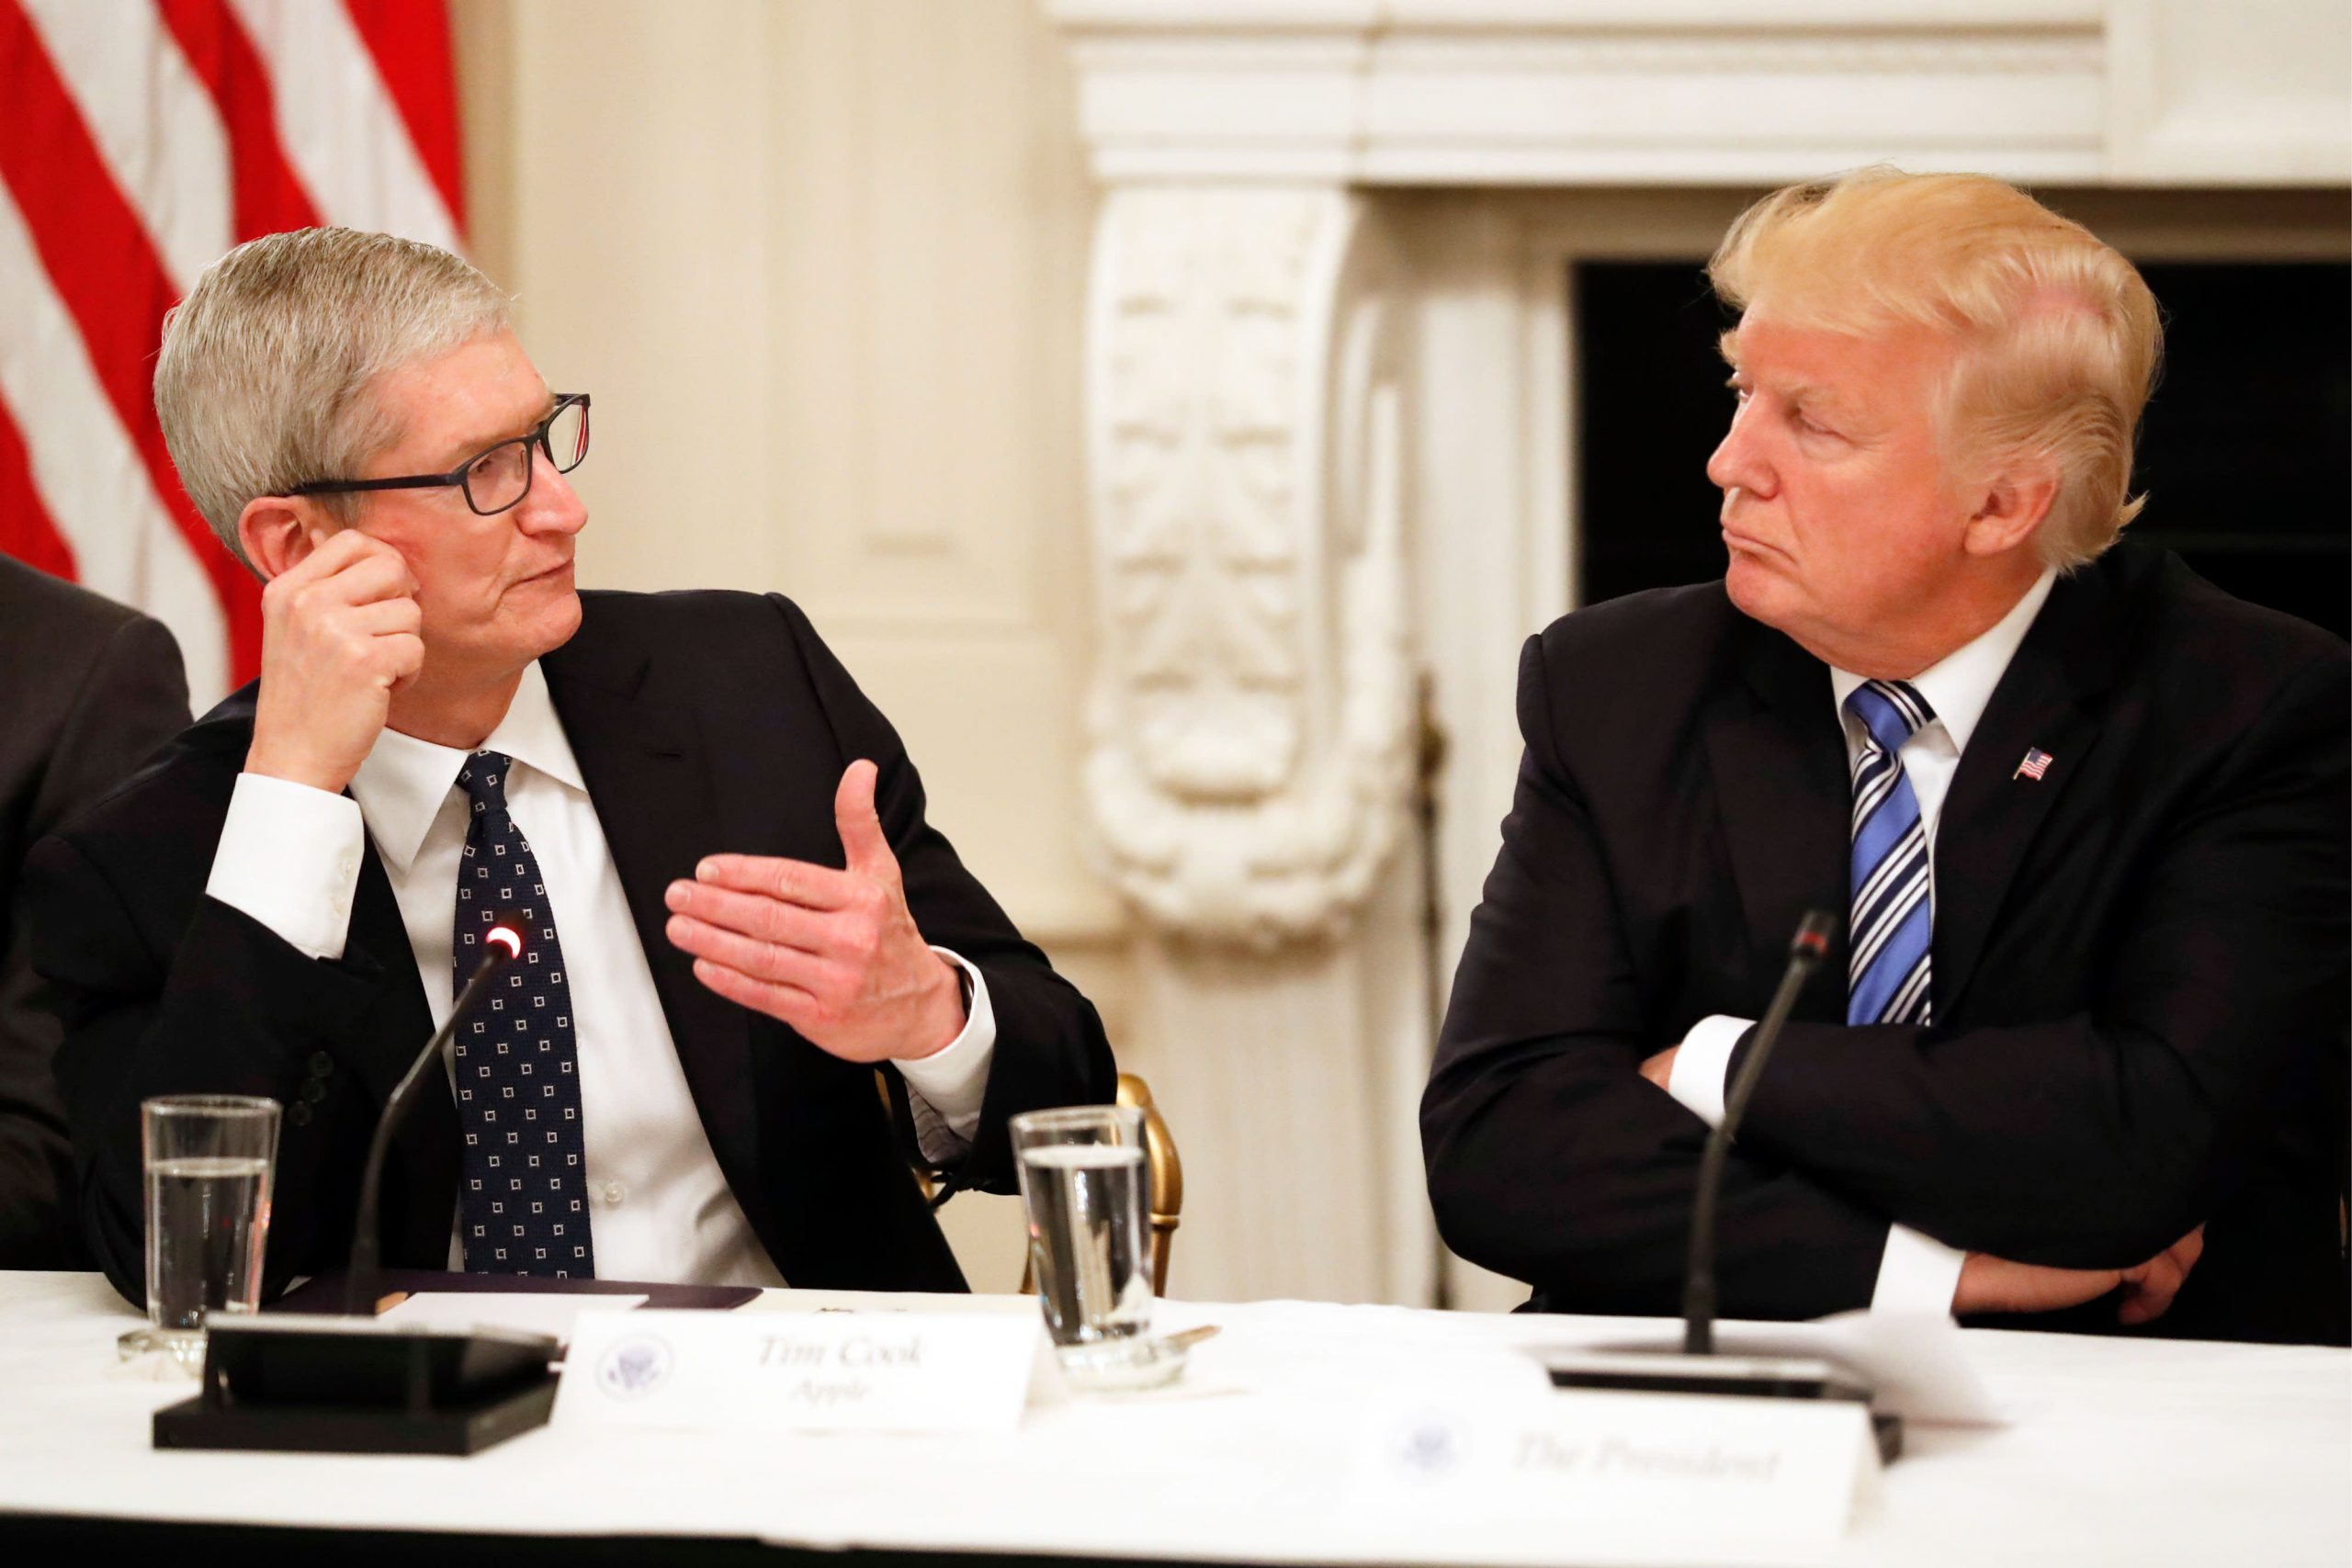 Apple says it didn't know Trump's DOJ was asking for Democrats' data